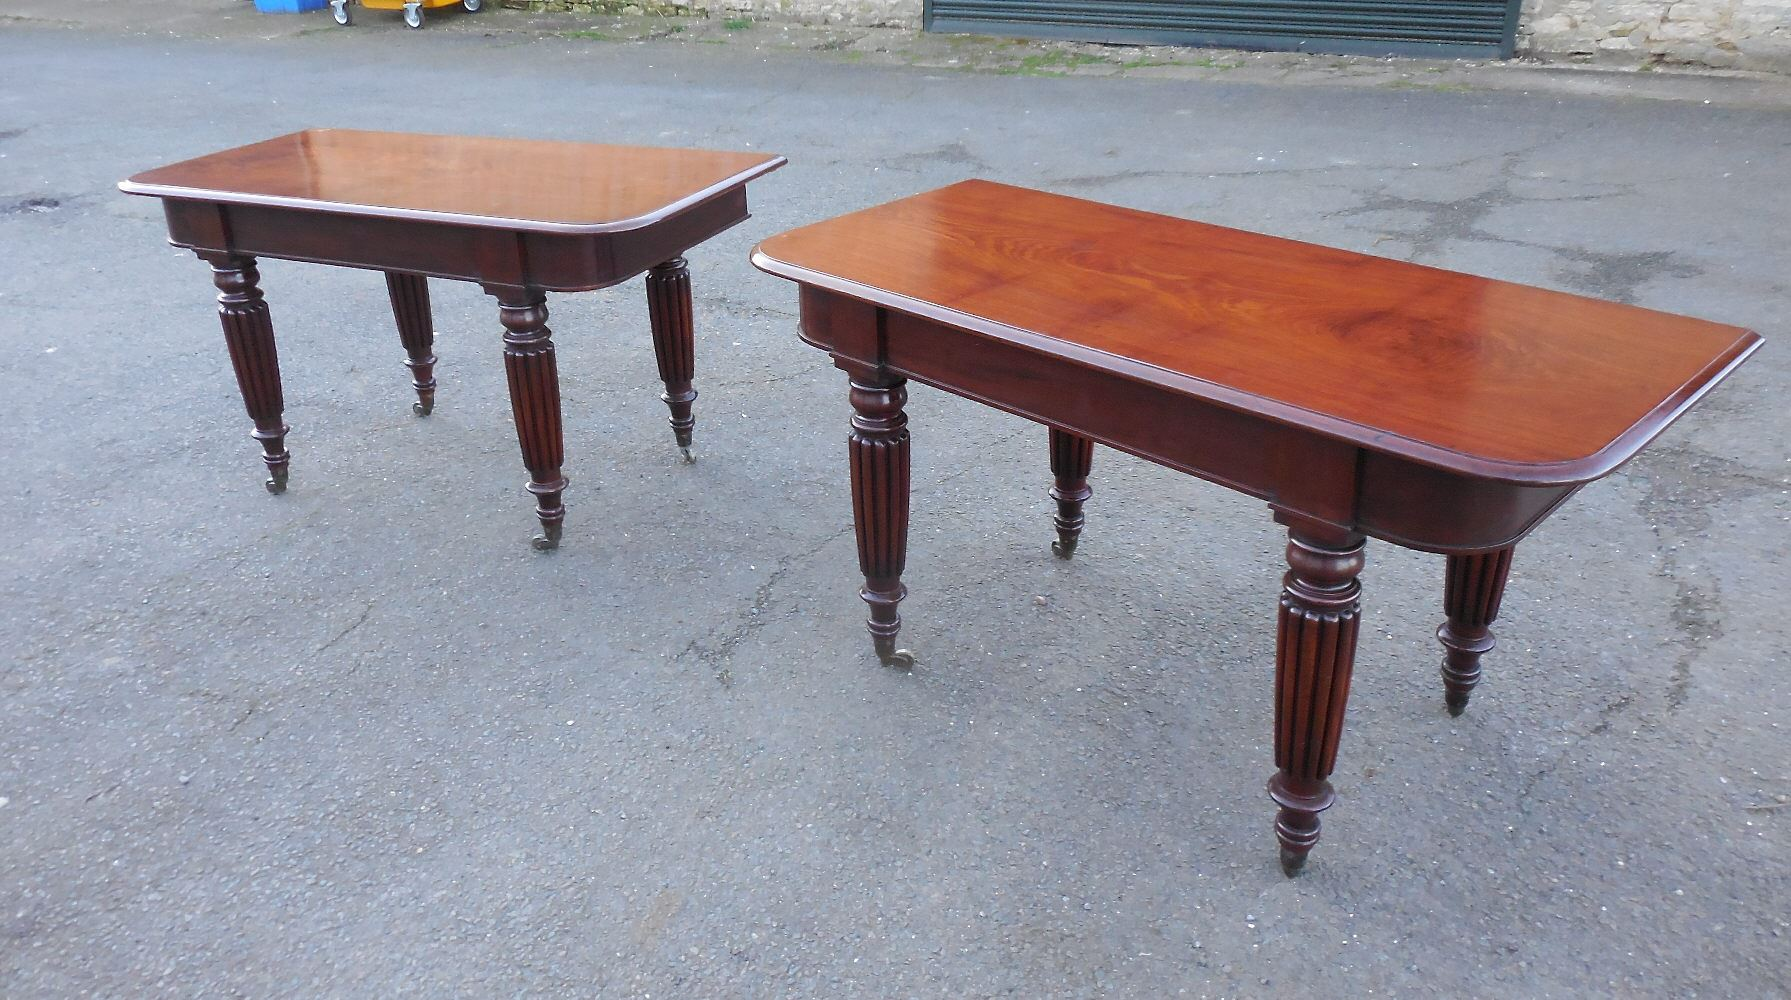 Very Rare Large Original Georgian Extening Mahogany Dining Table Of Gillows Design